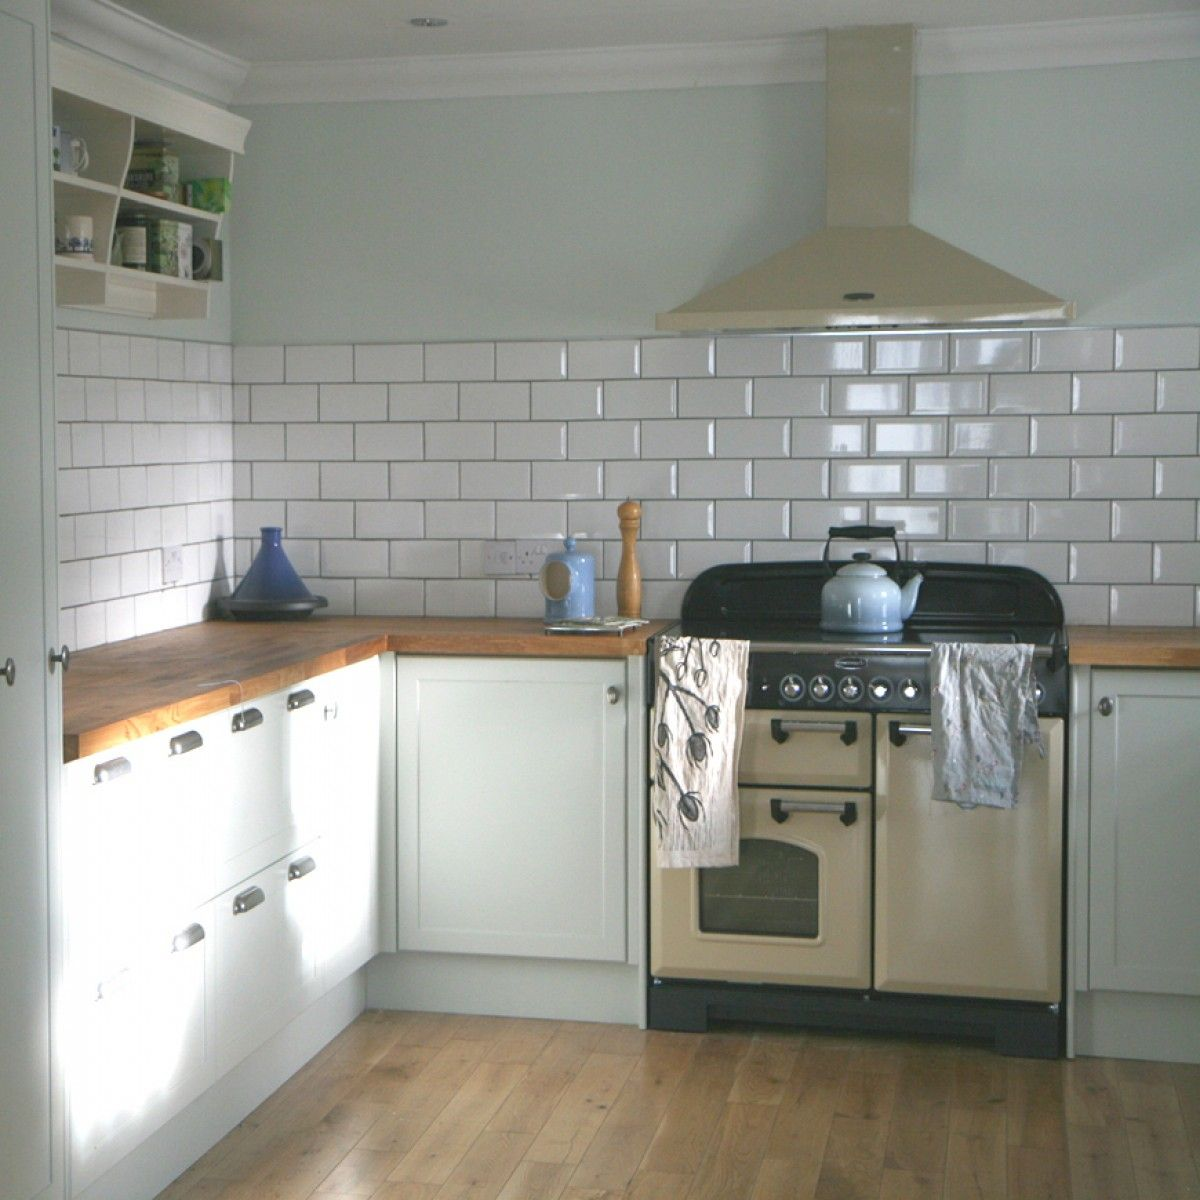 white subway tile in modern kitchen - Google Search